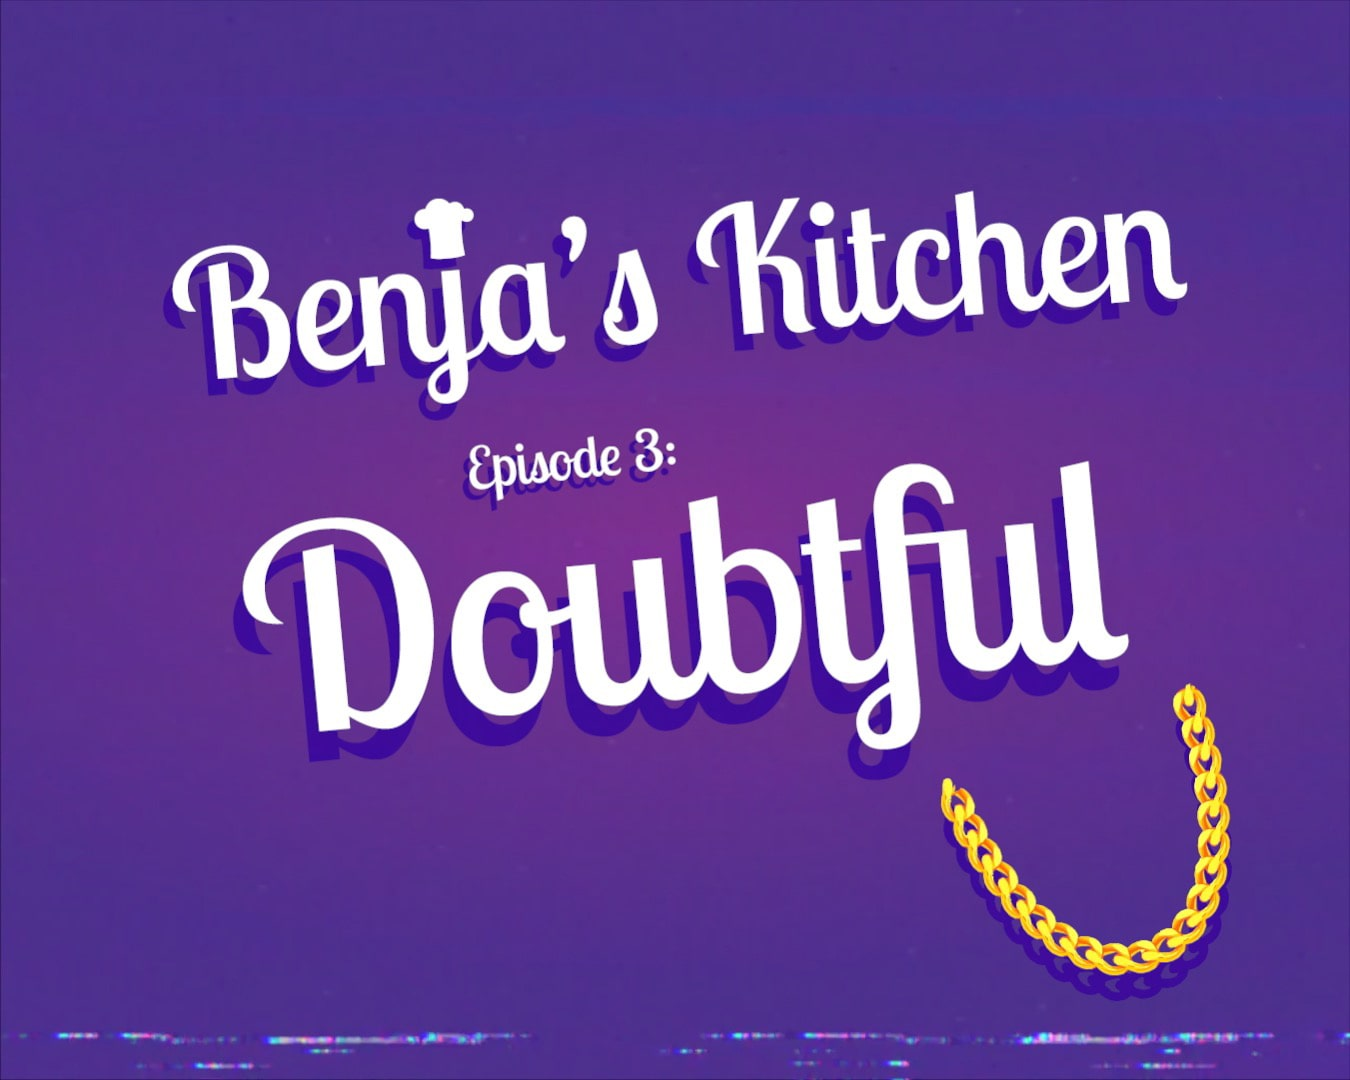 Benja's Kitchen Episode 3 Doubtful